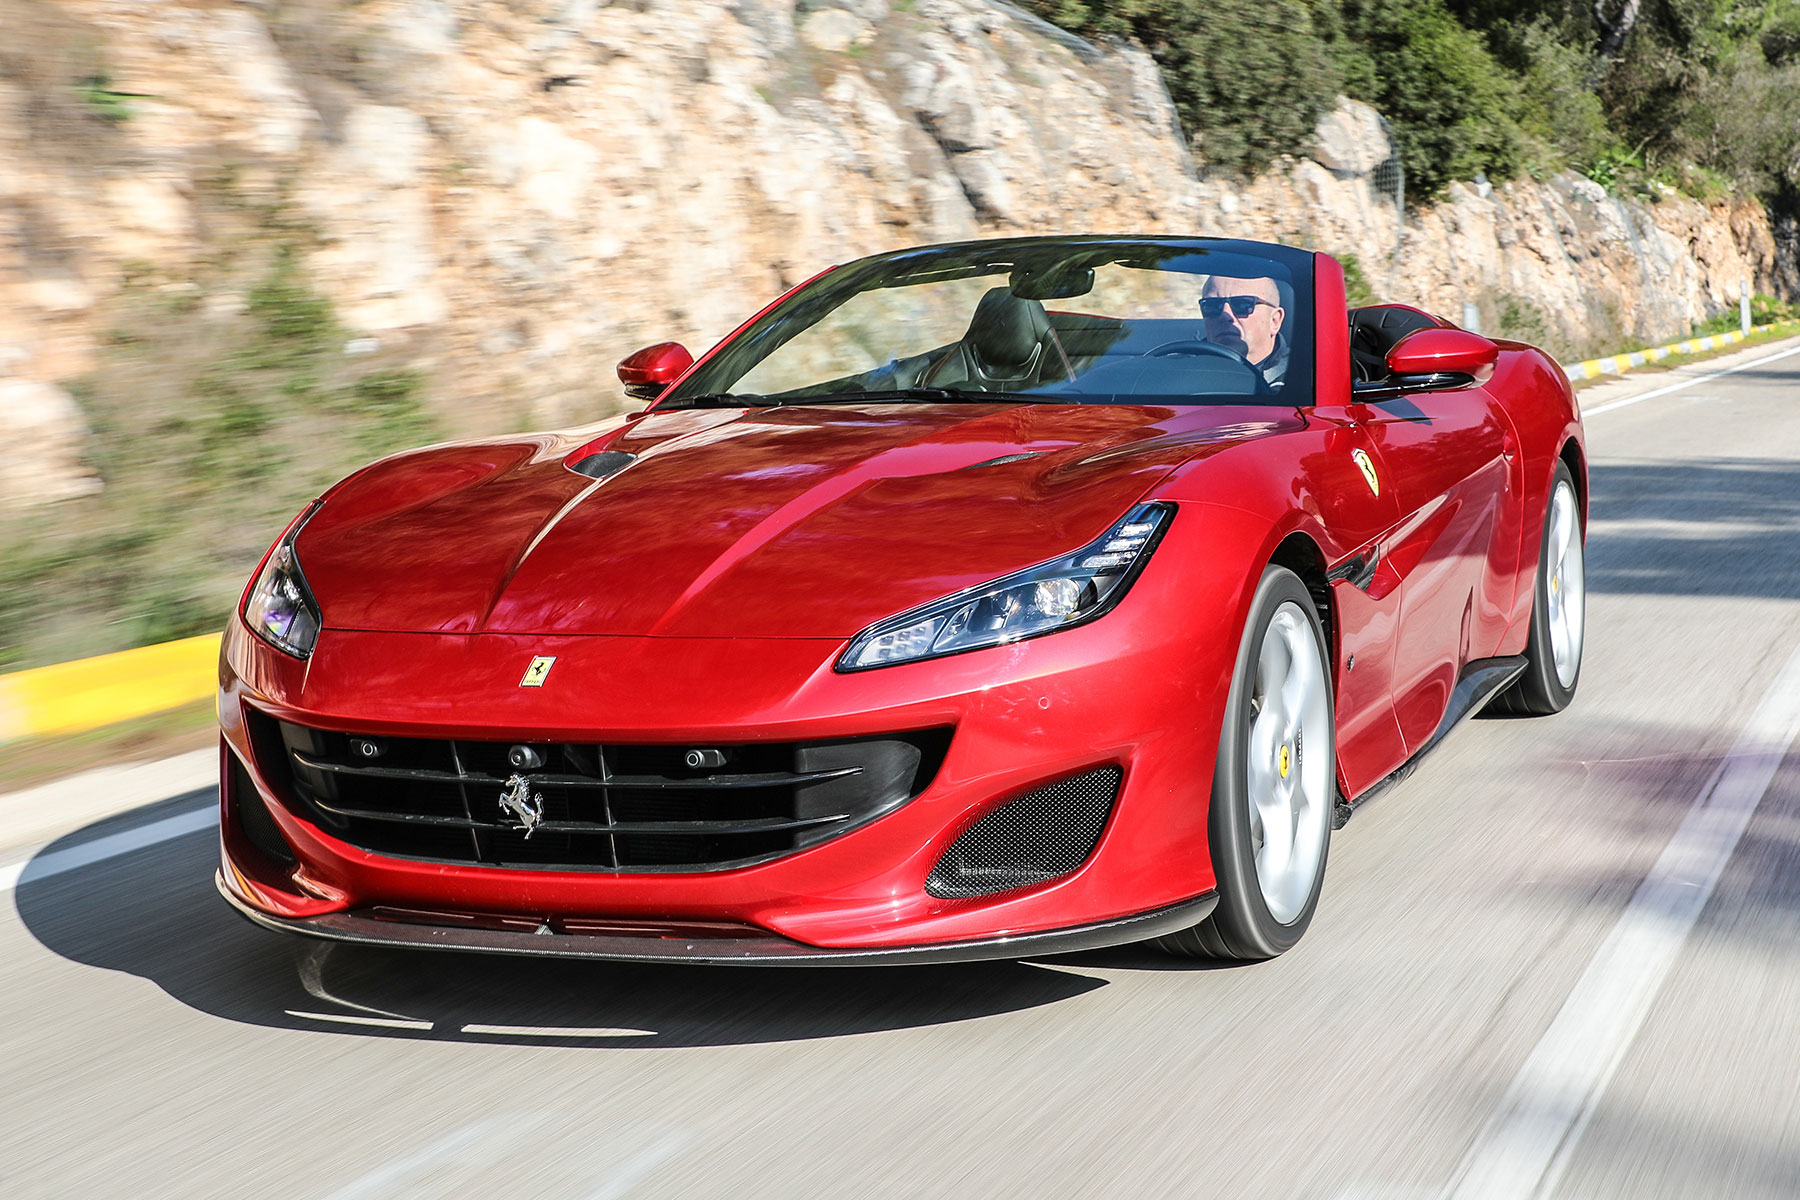 2018 ferrari portofino first drive: the entry-level ferrari you